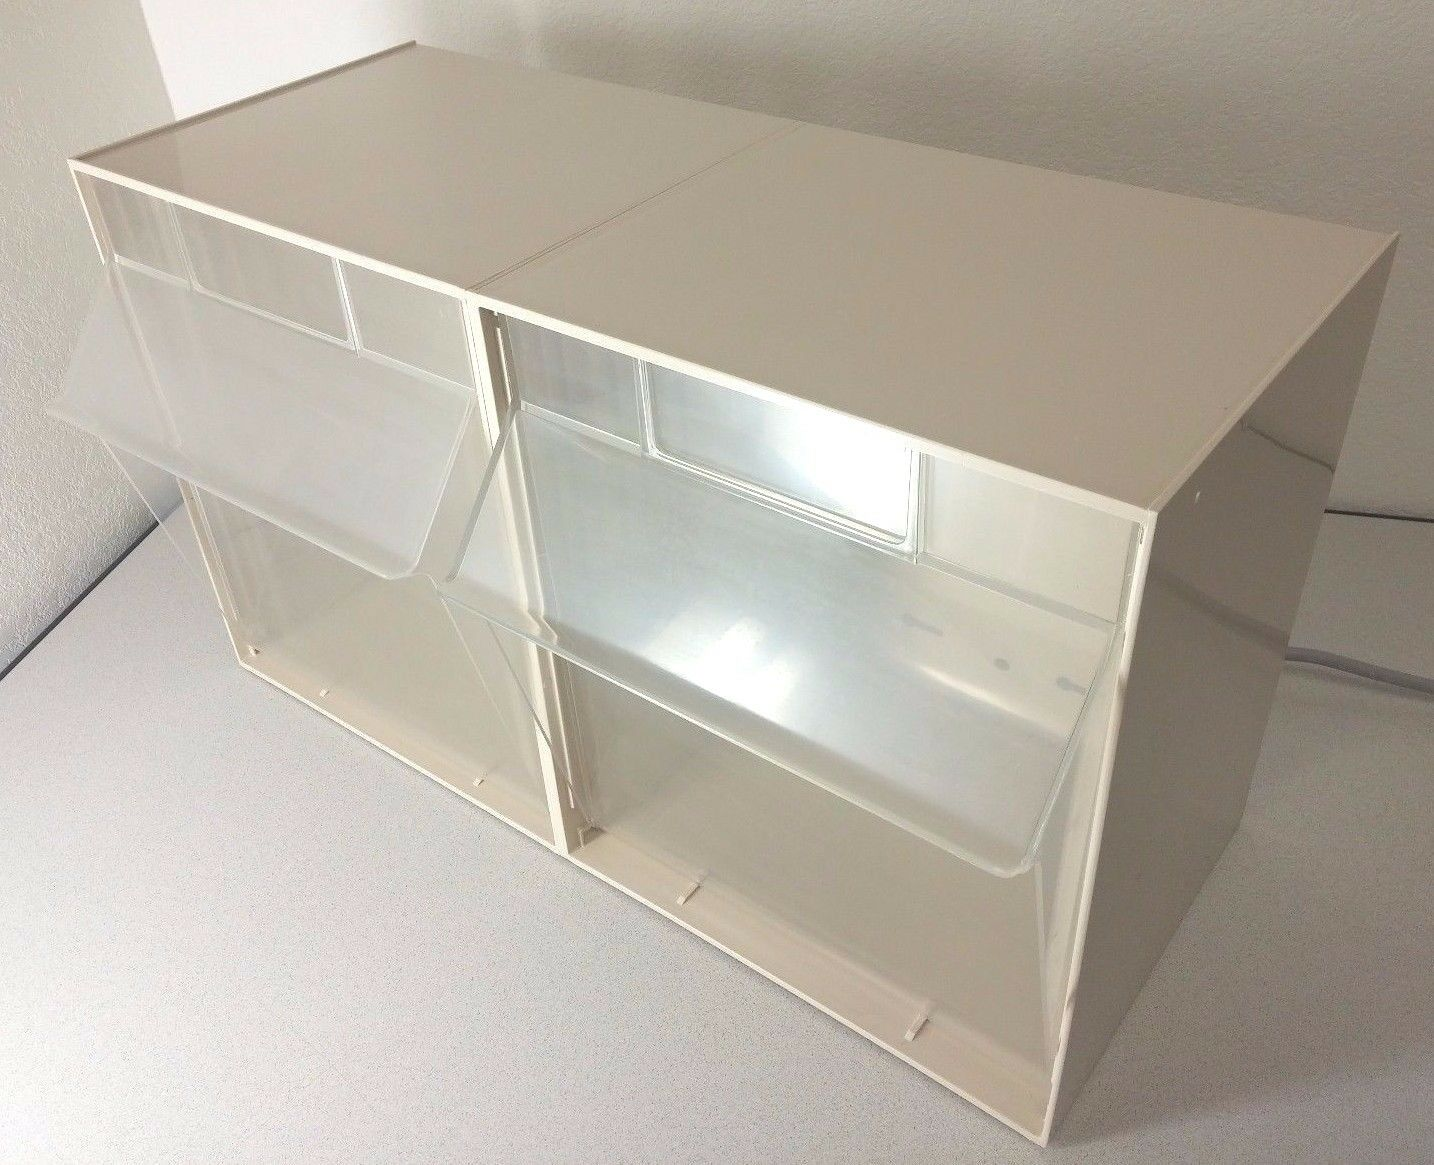 QUANTUM STORAGE SYSTEMS 1215 01 Bin Unit 2 Tip Out Bins Ivory 1 Of 5Only 1  Available QUANTUM STORAGE ...